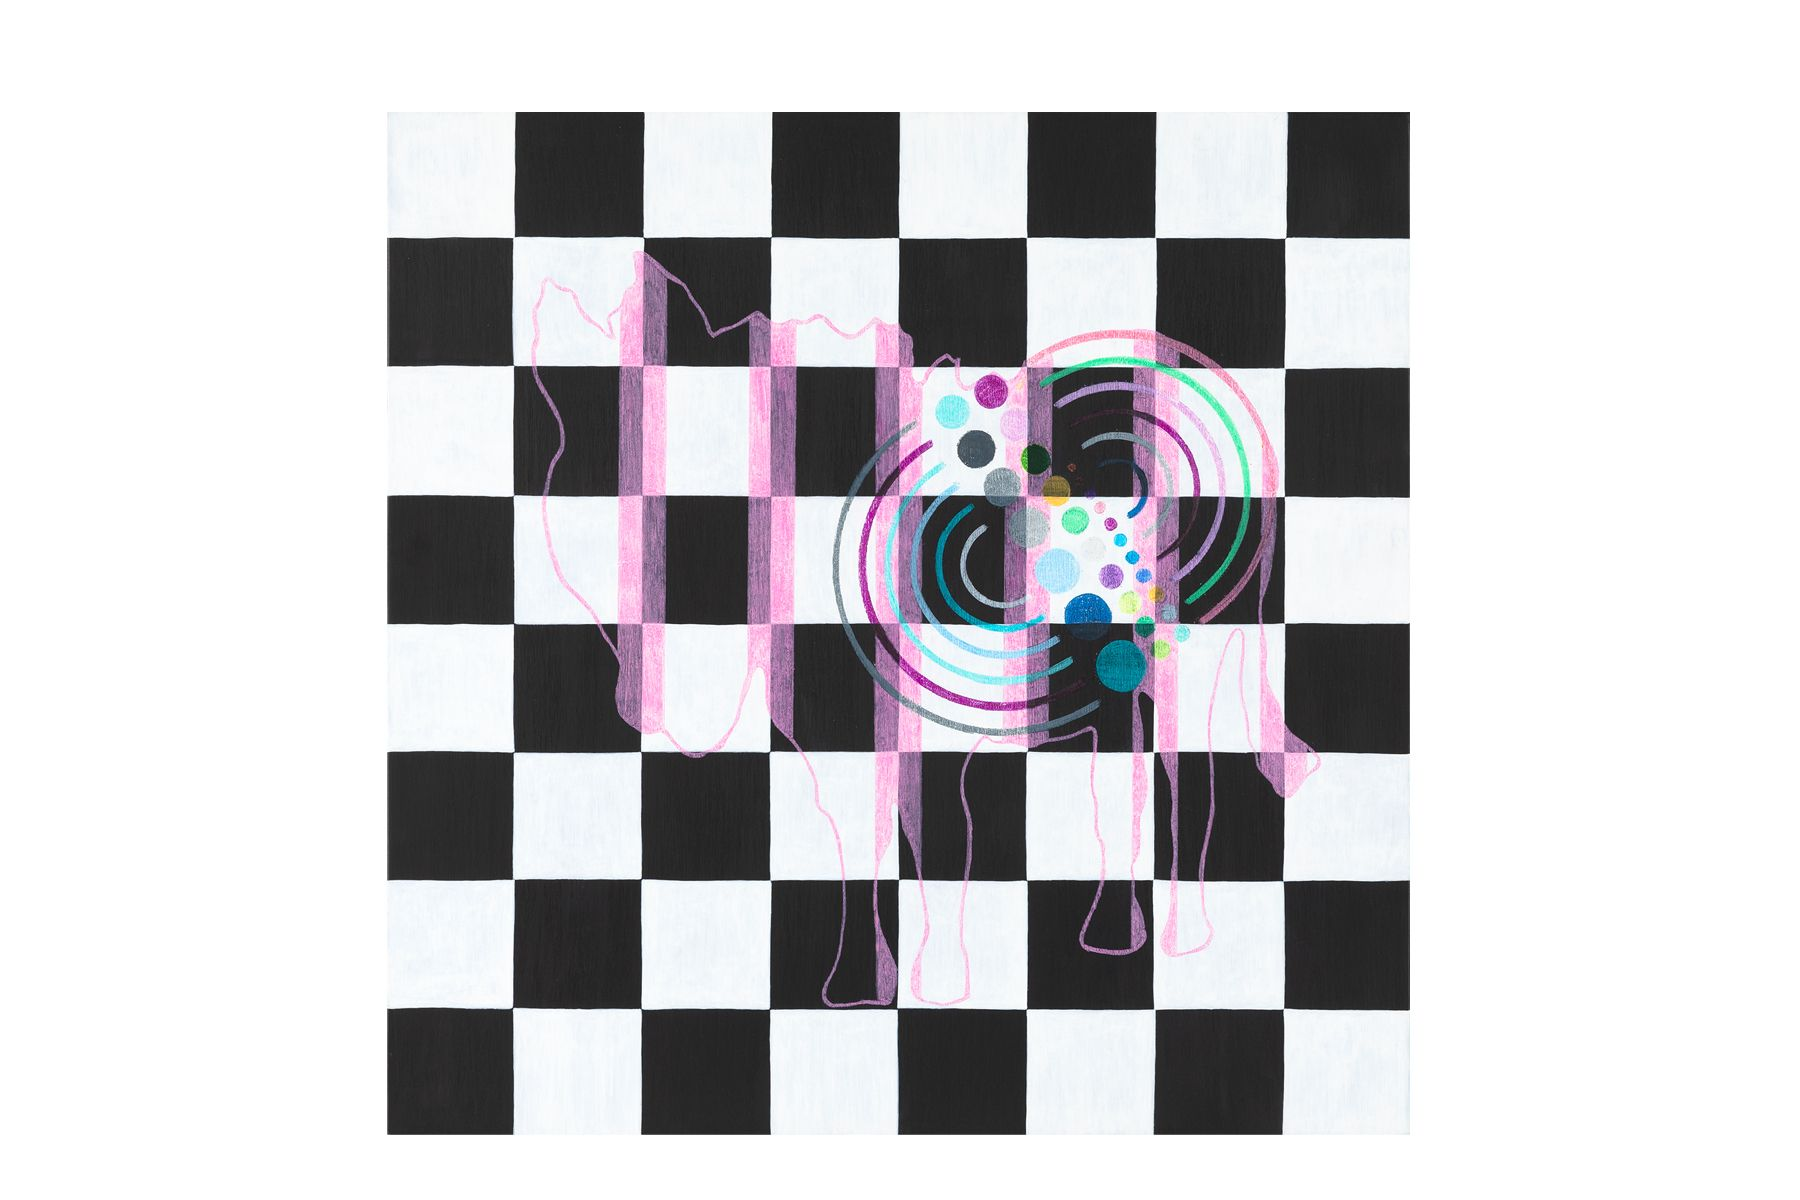 Black and White Checkered Board with Pink Donkey